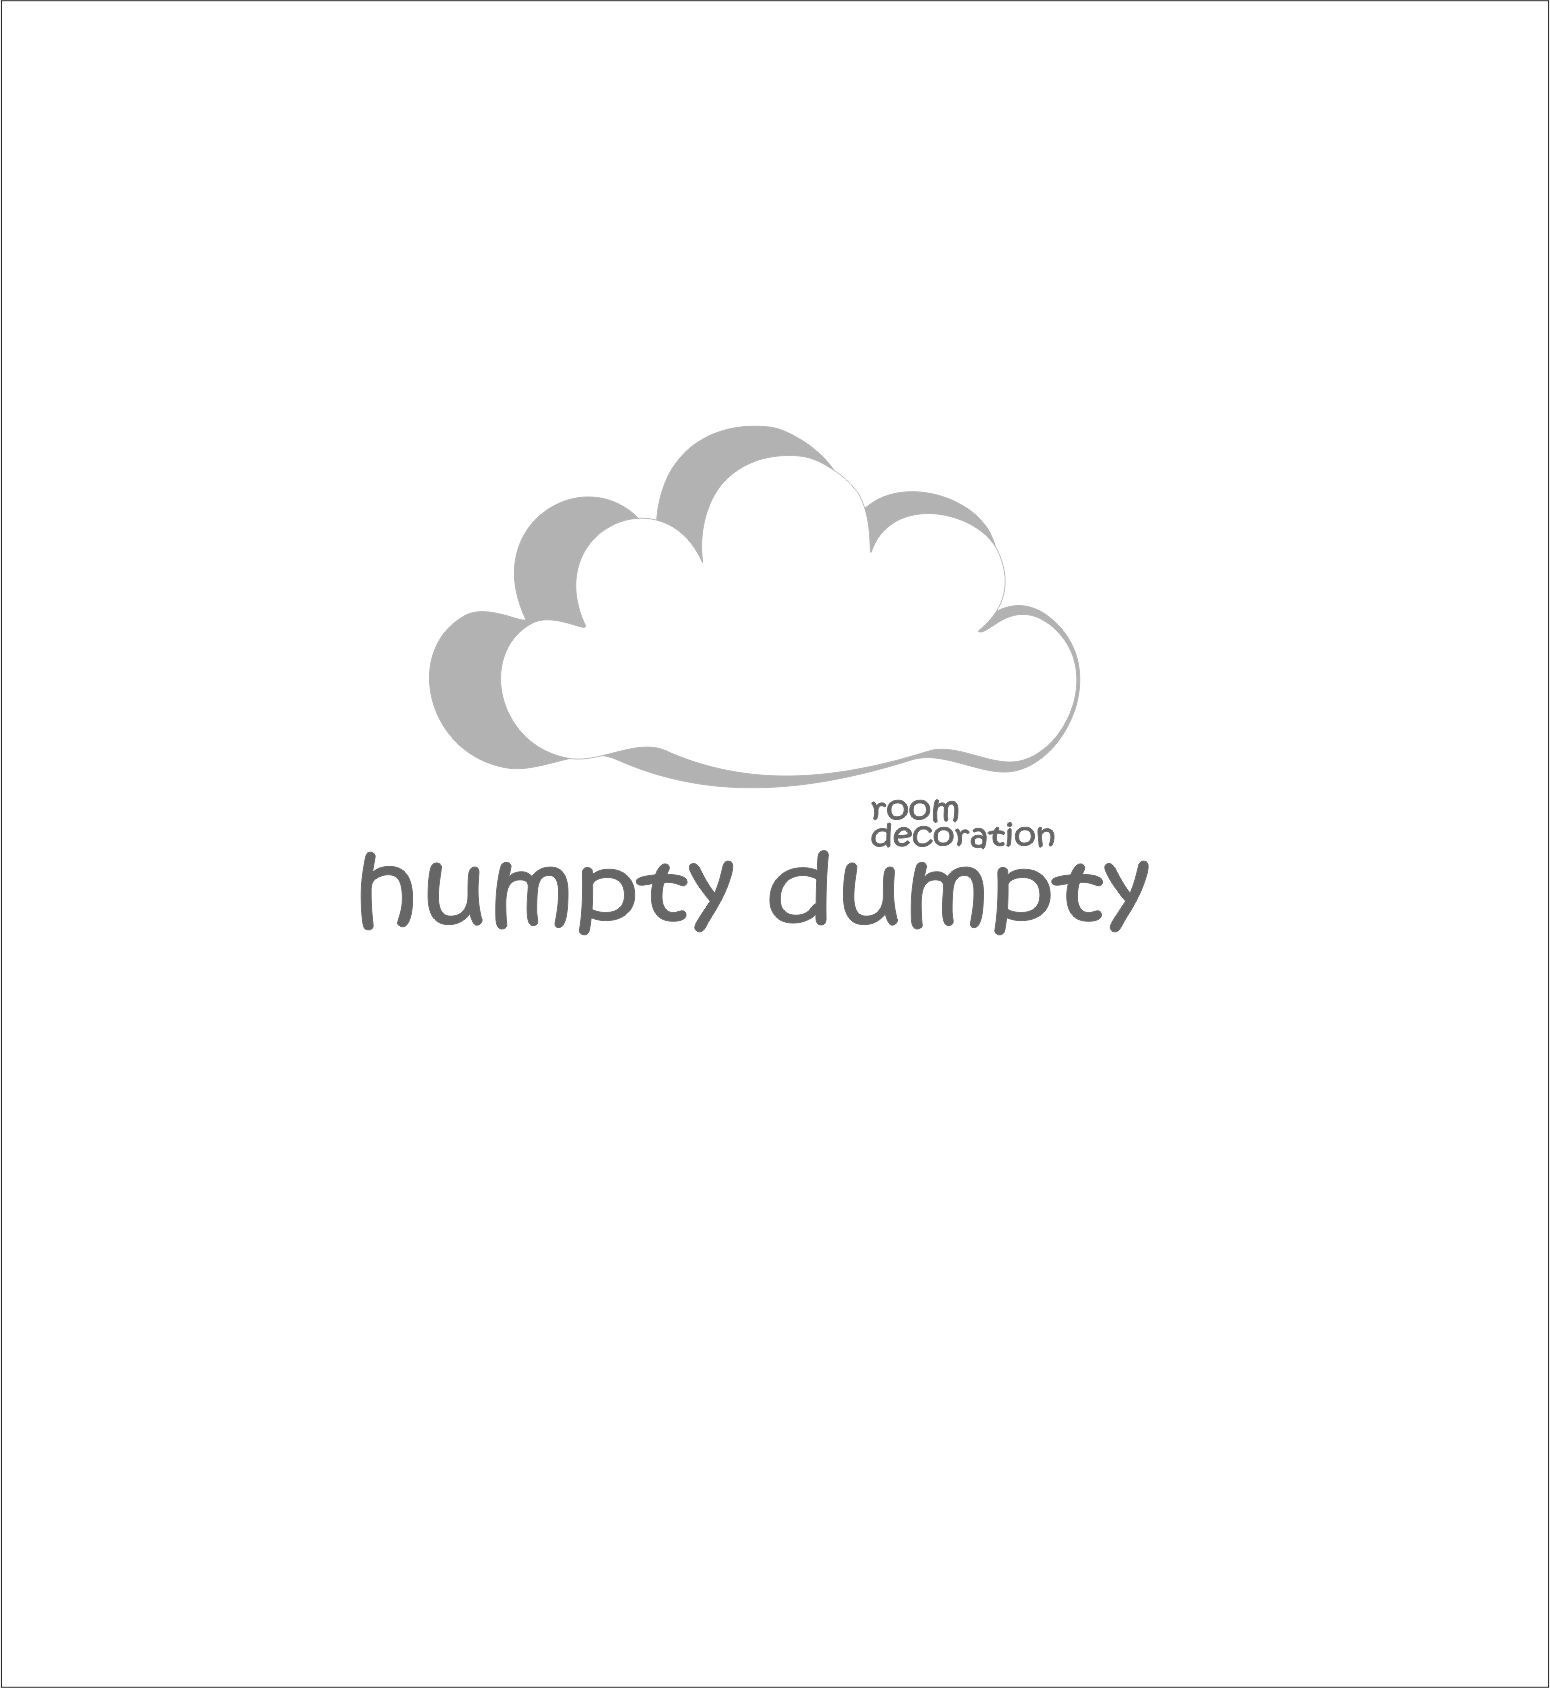 Humpty Dumpty Room Decoration